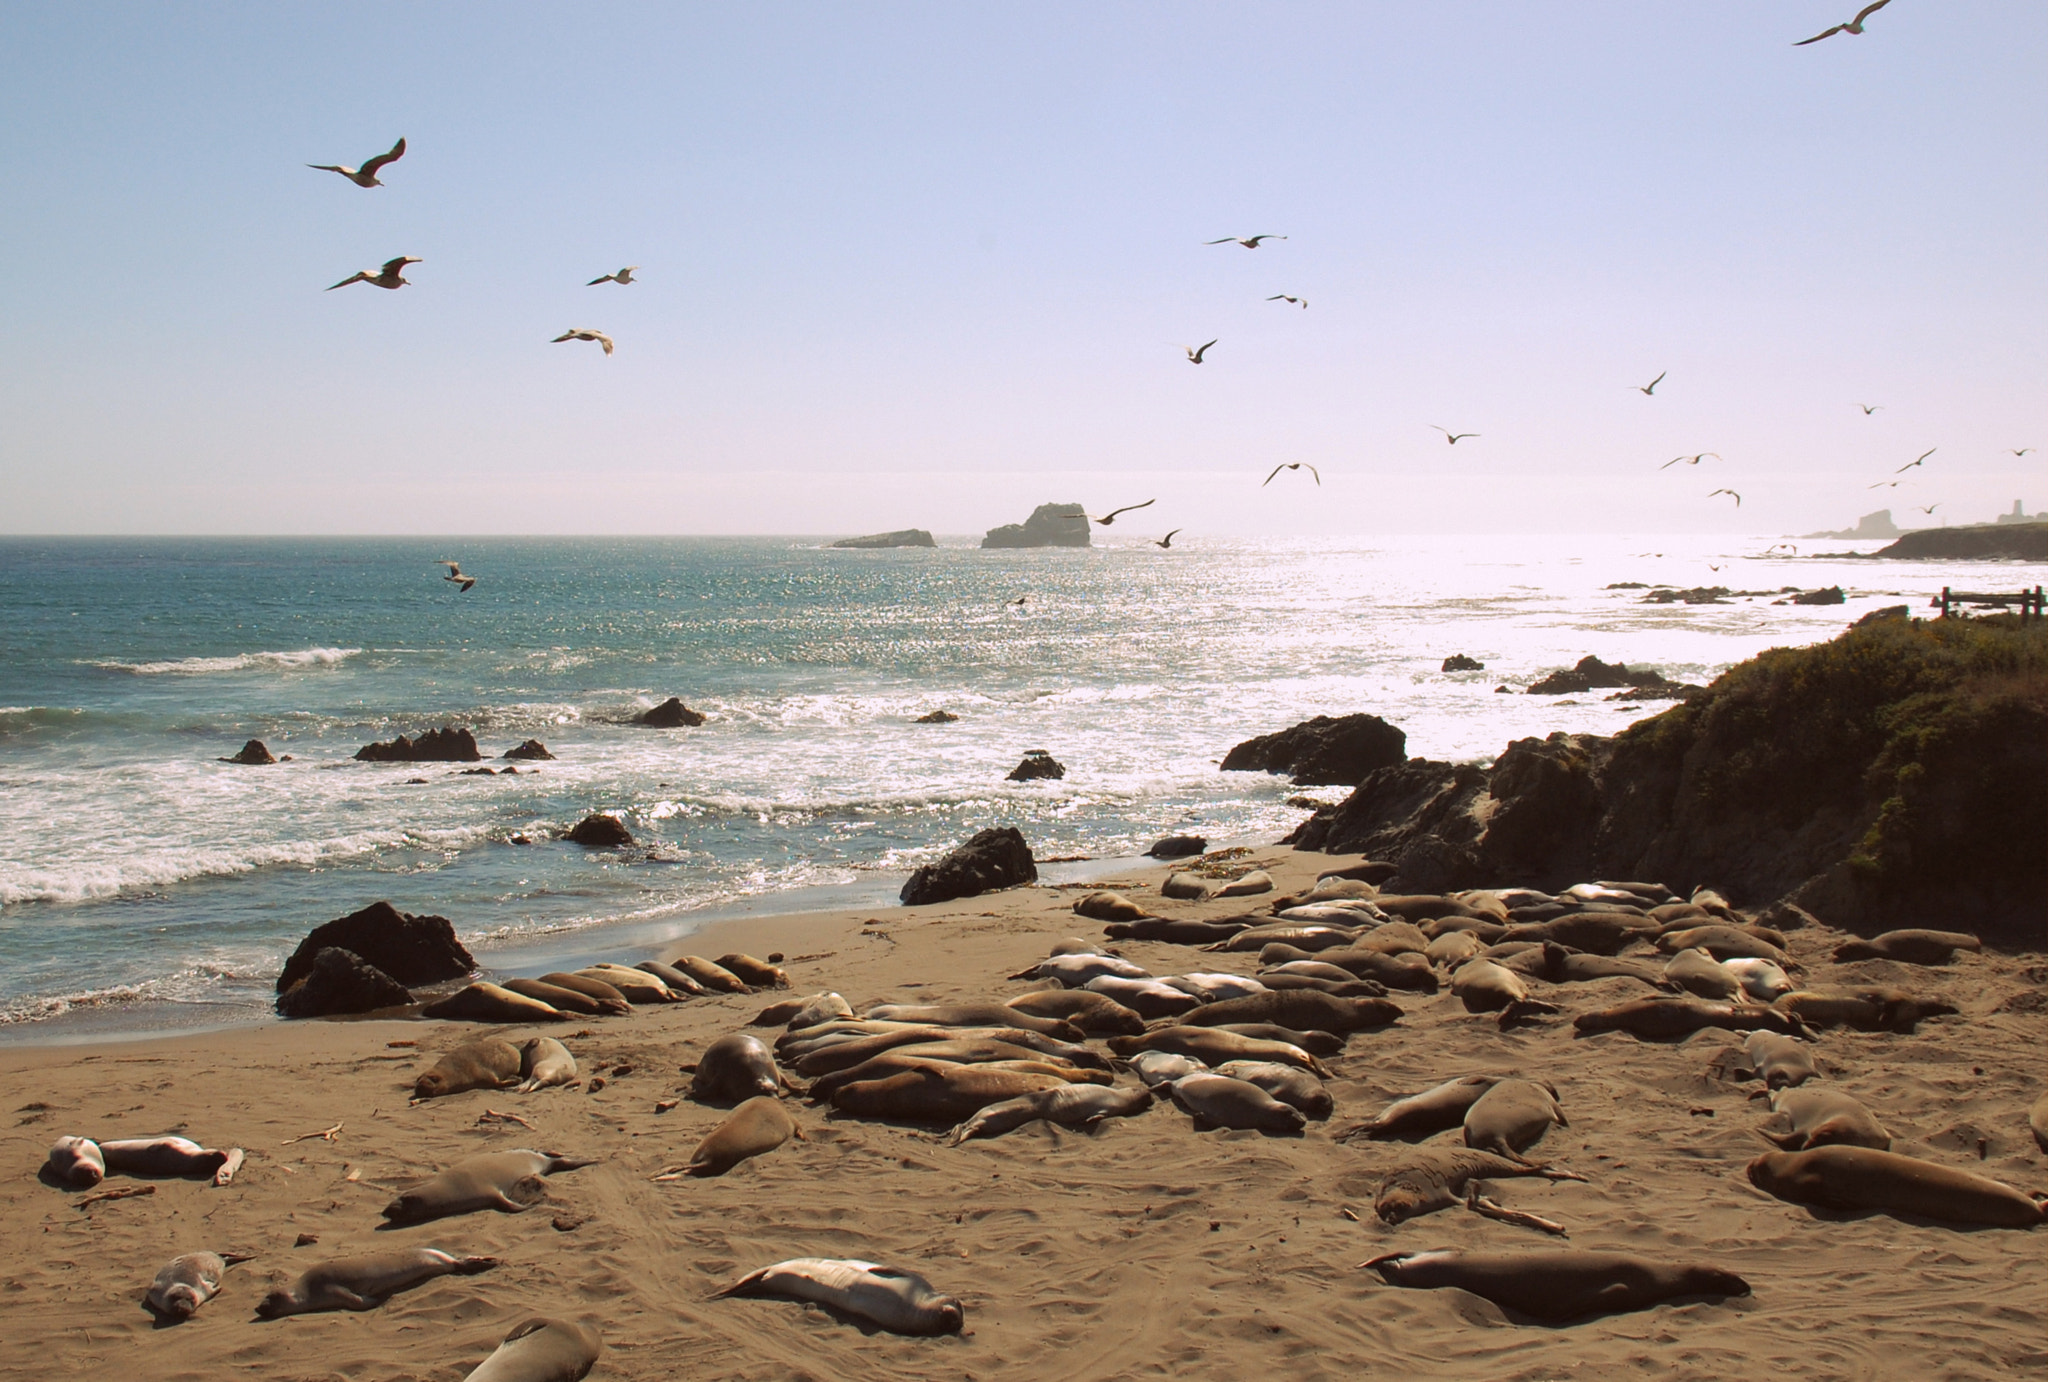 Photograph Elephant Seals Sunning by Sarah Kate Wong on 500px